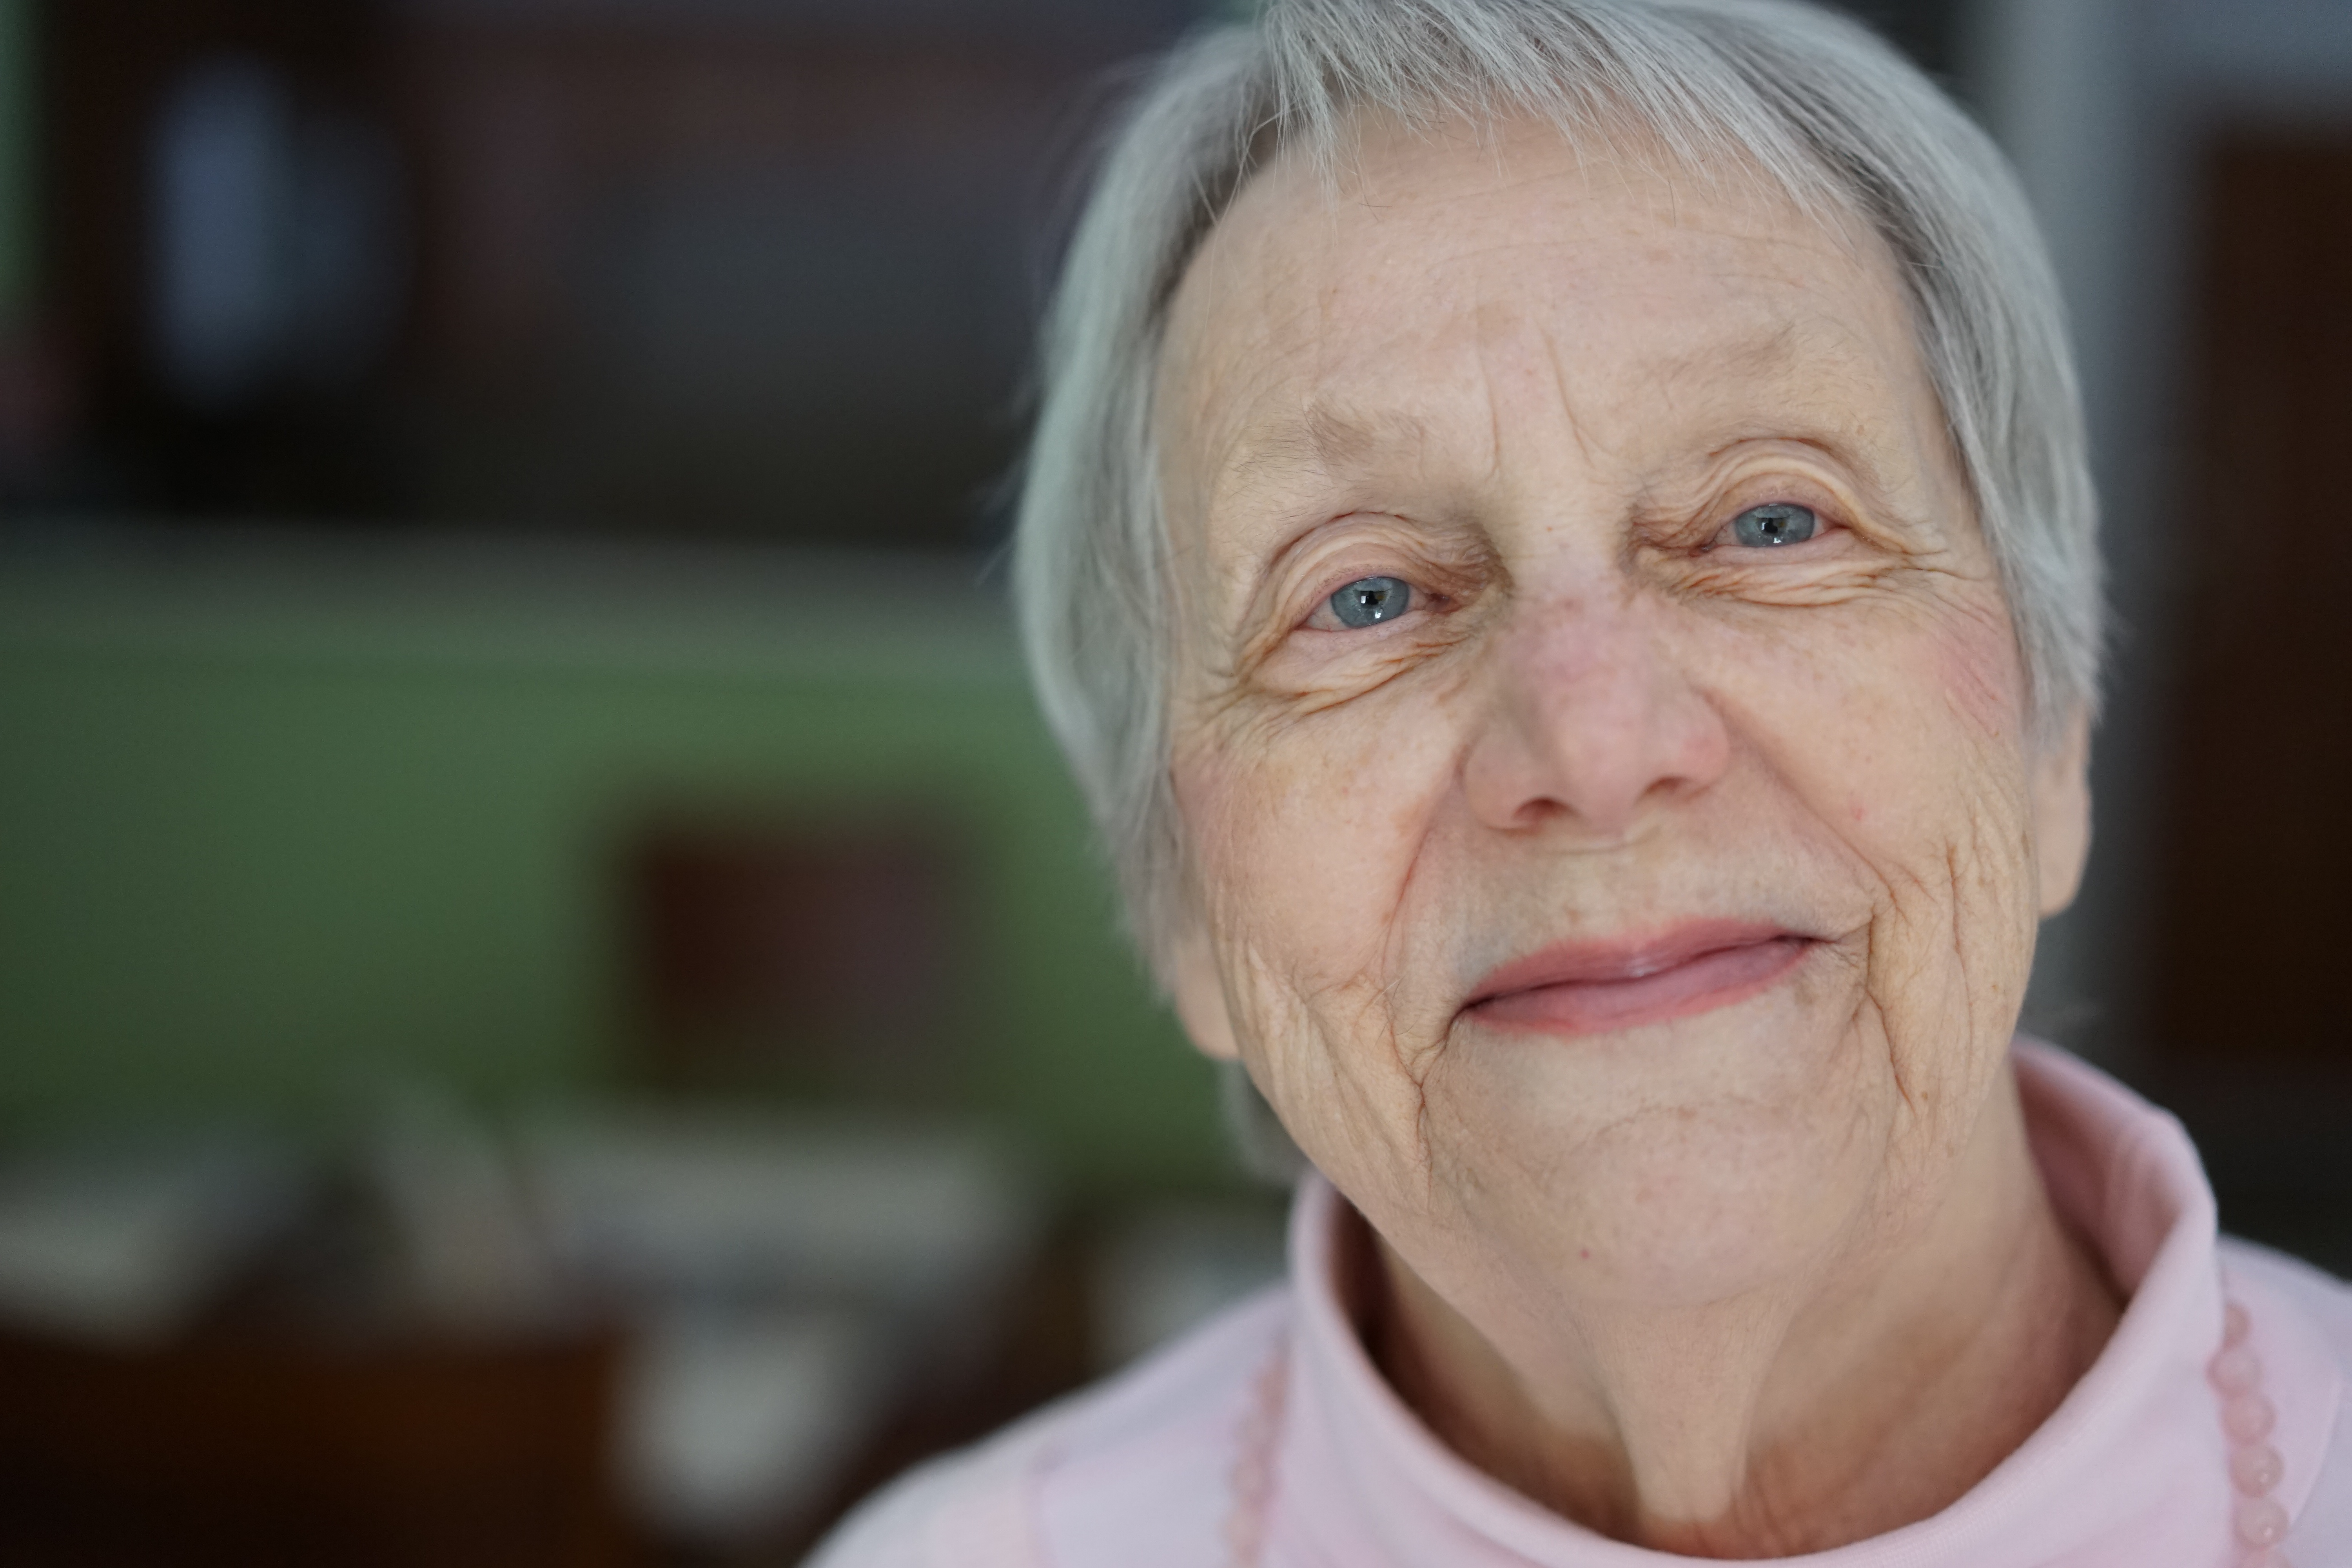 How will socail services help out if you are having financial difficulties in a nursing home?